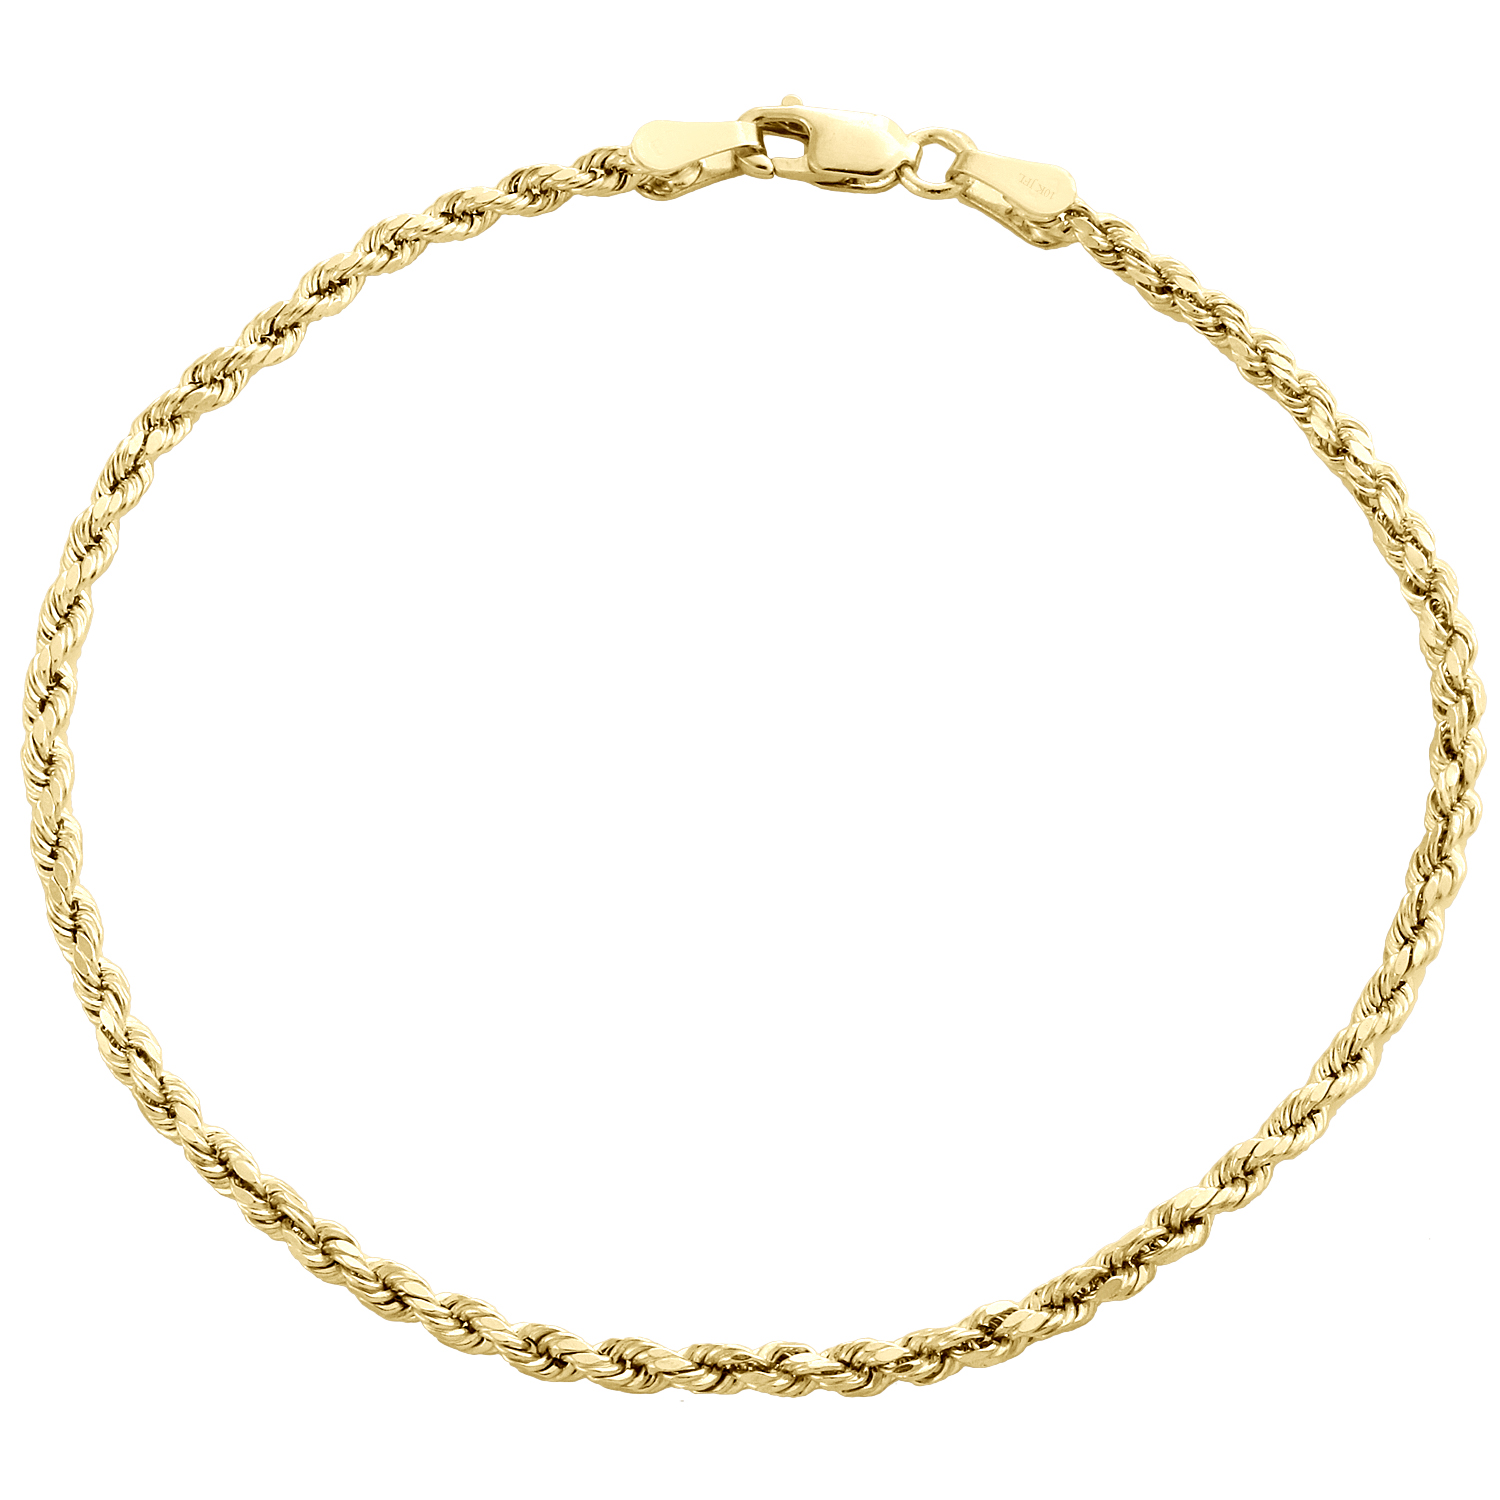 10k Yellow Gold Diamond Cut Hollow Rope Chain Bracelet and Anklet 2mm